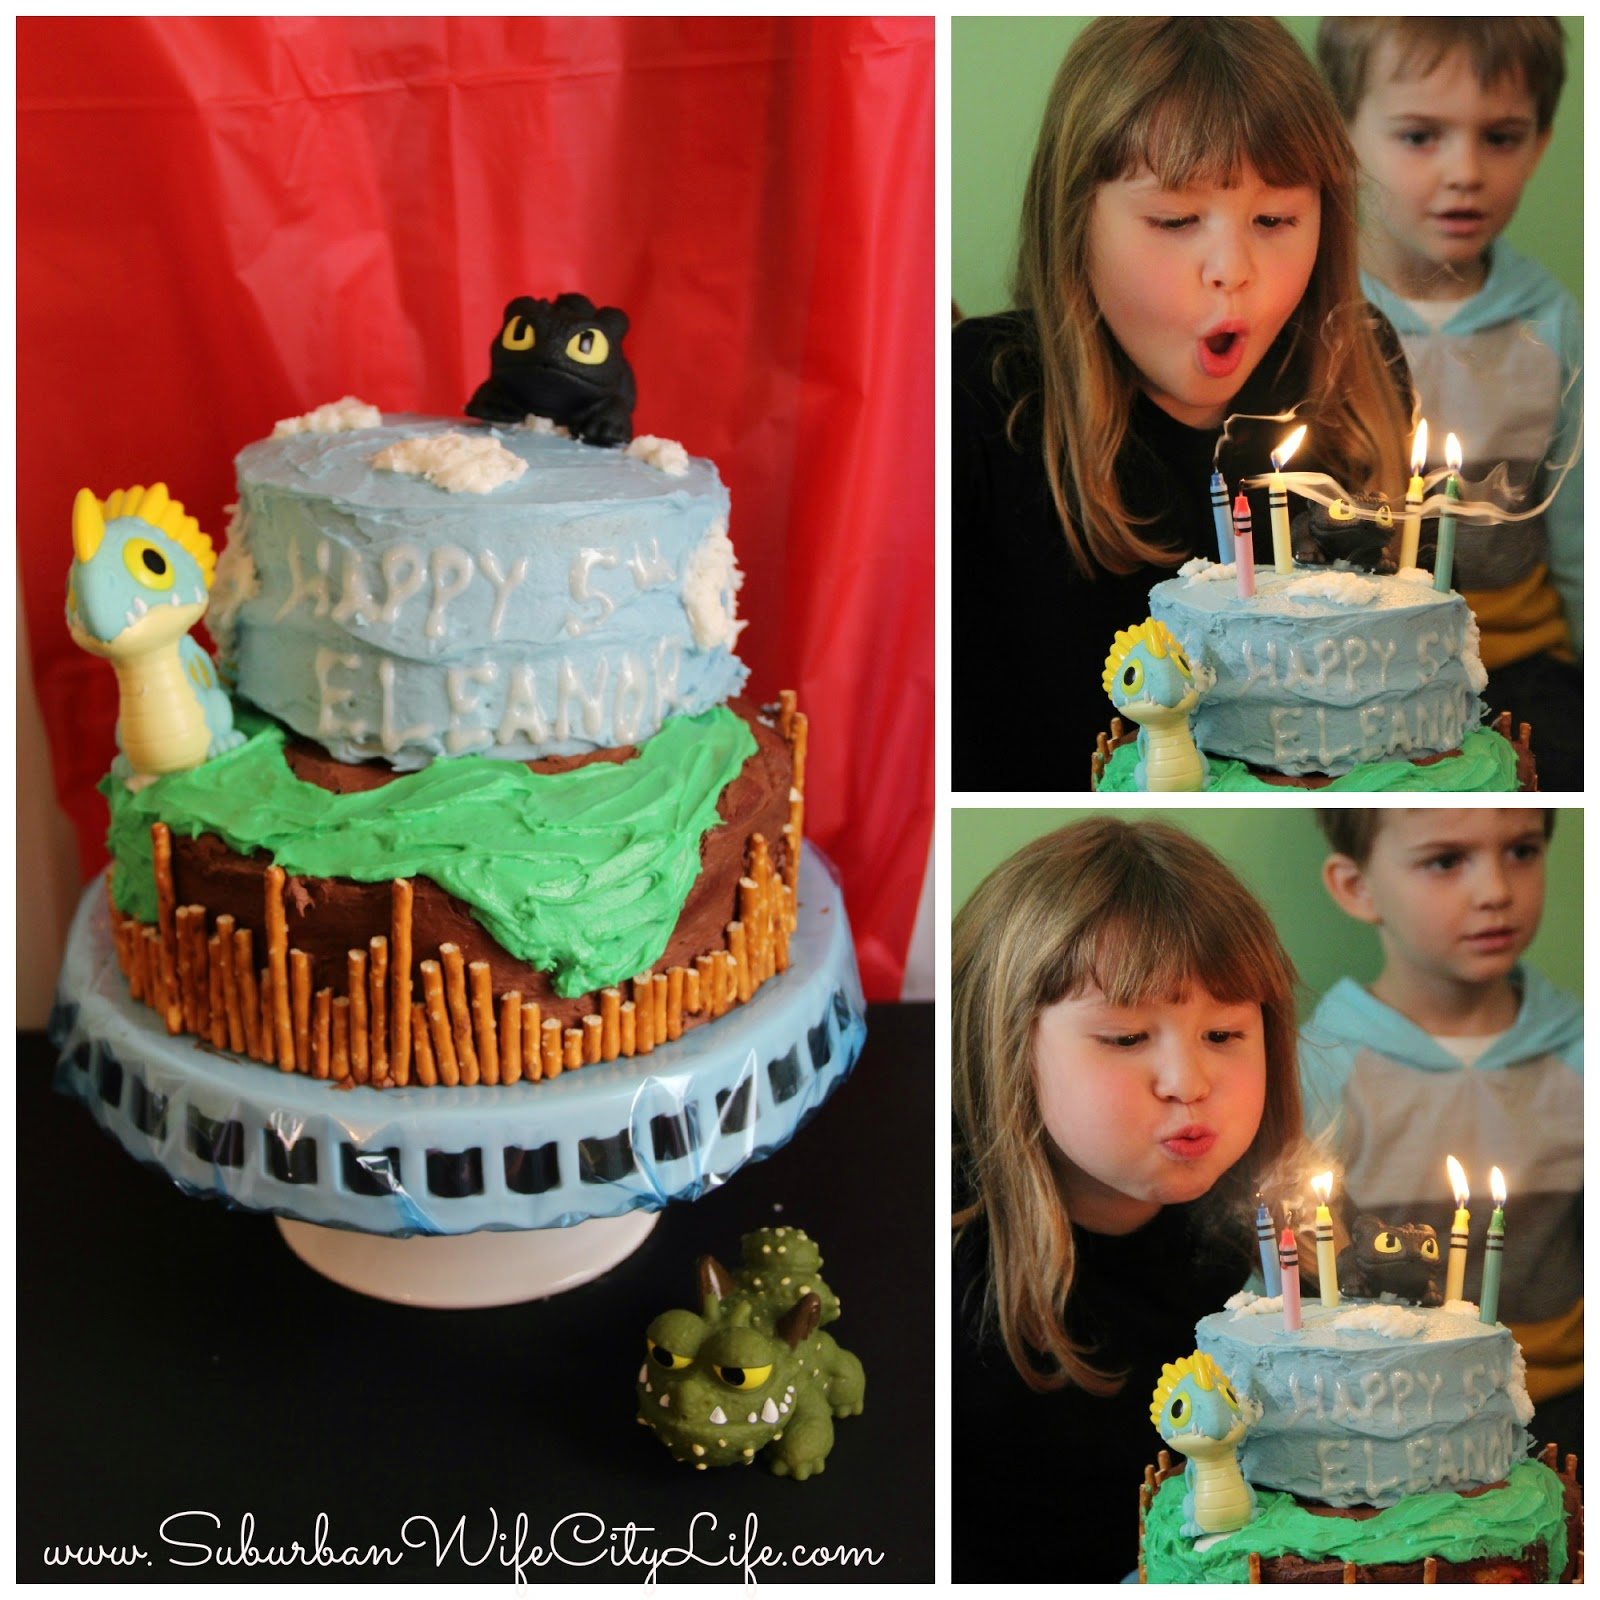 How to train your dragon birthday party suburban wife city life as for the cake i would have loved to make a toothless but didnt want to deal with black icing so we decided to make the island of berk and sky for ccuart Images